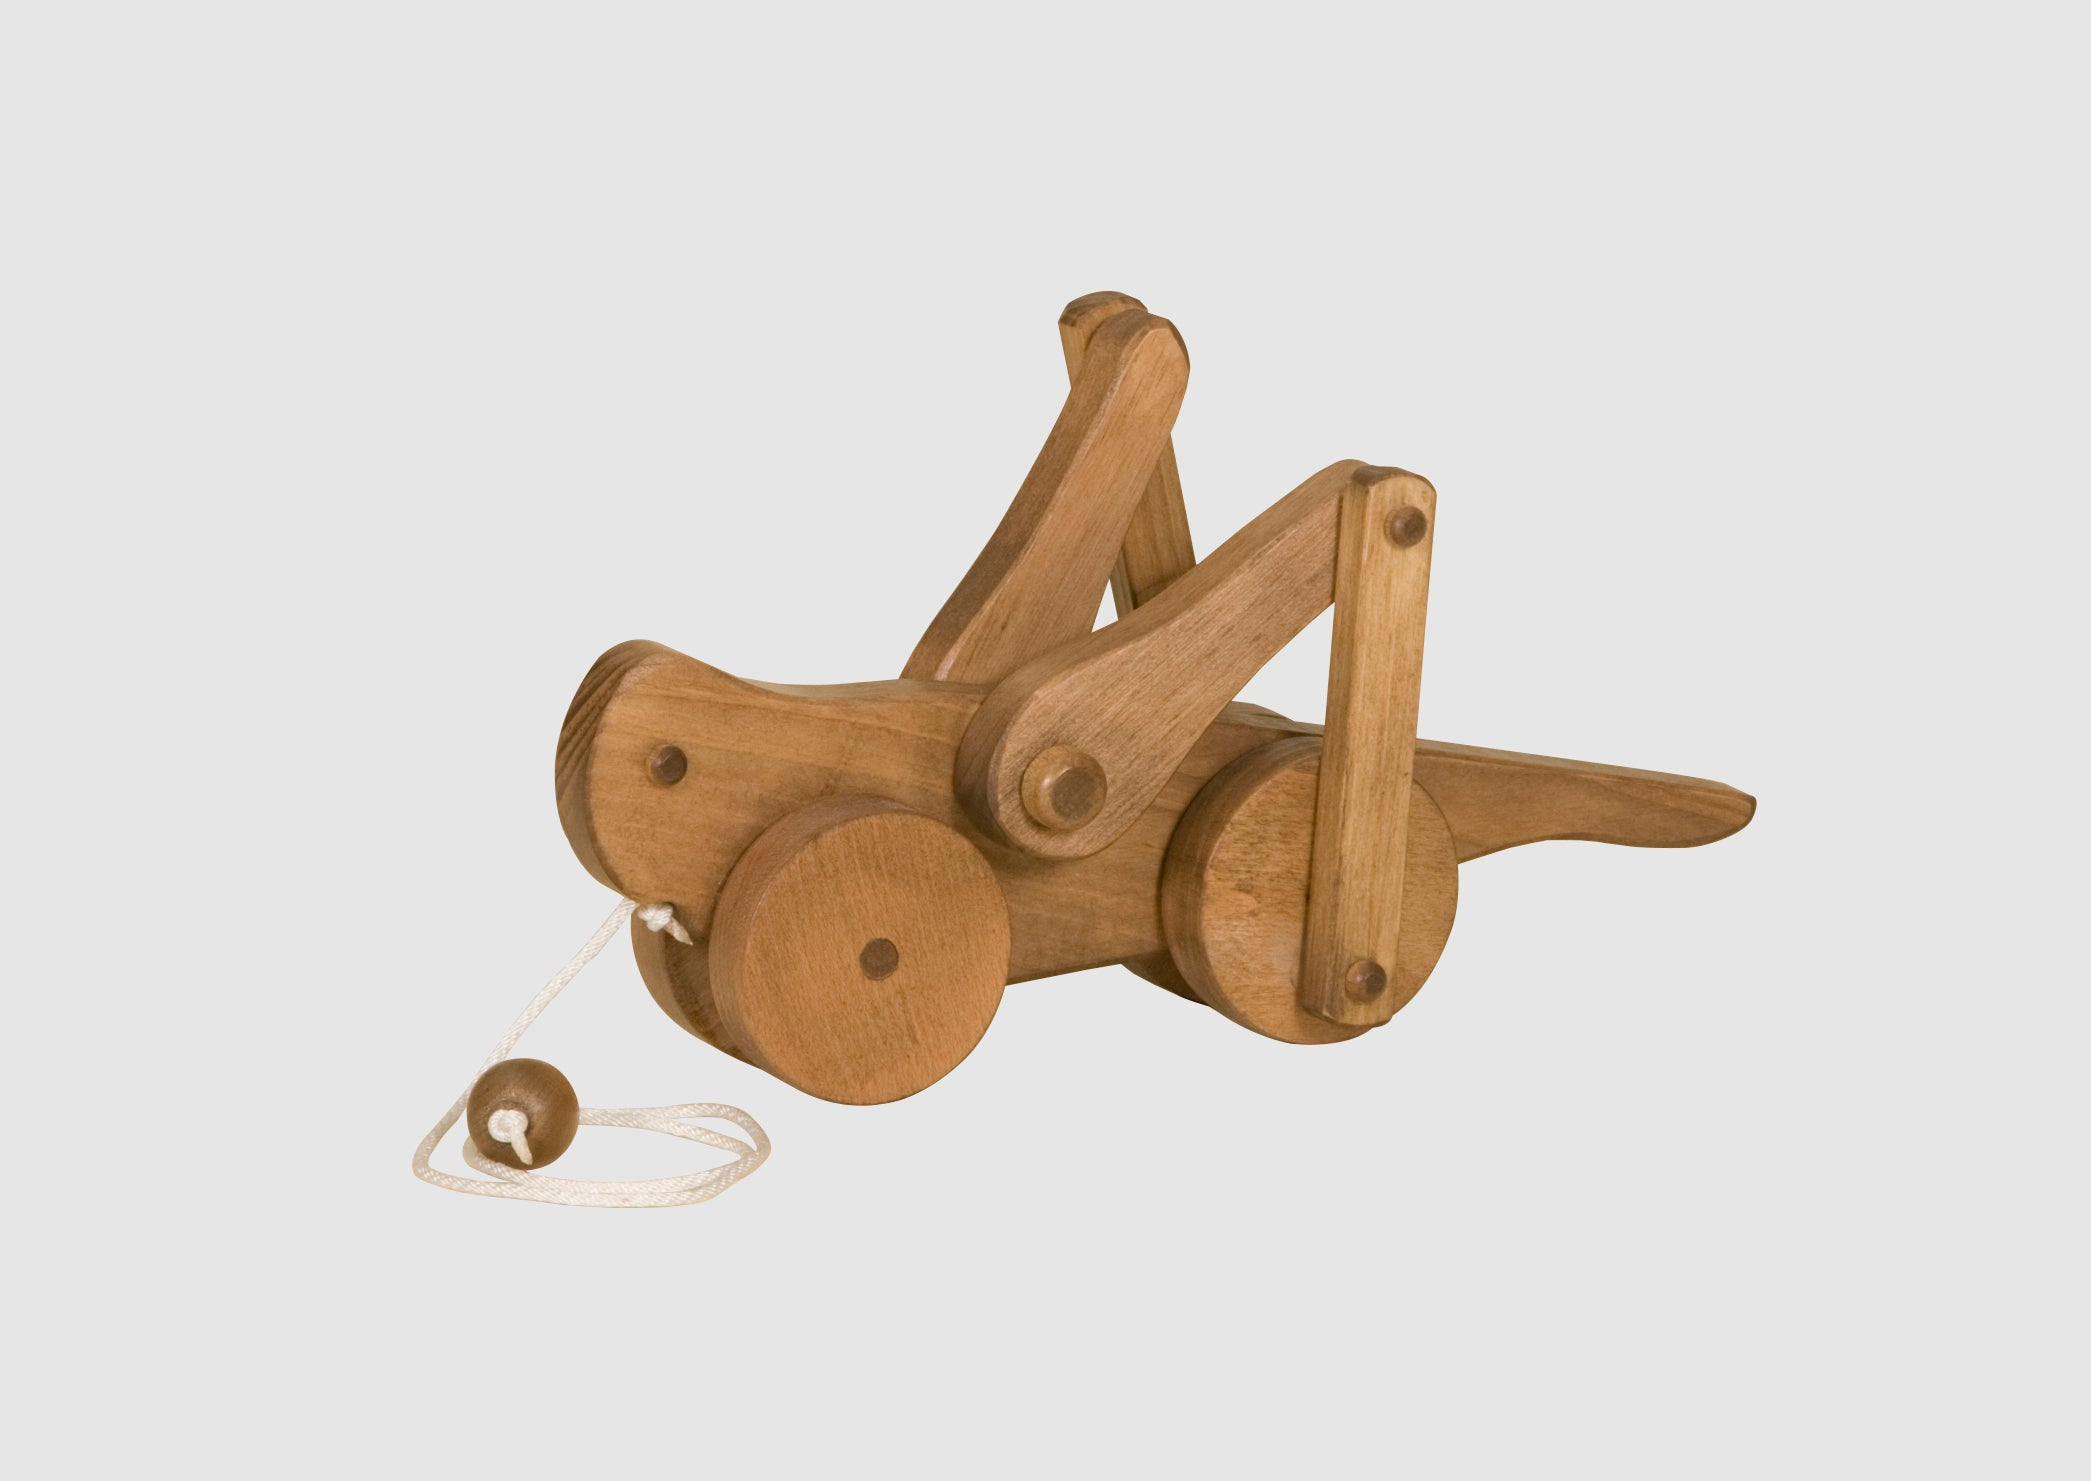 Wooden Amish-Made Pull Toy Grasshopper